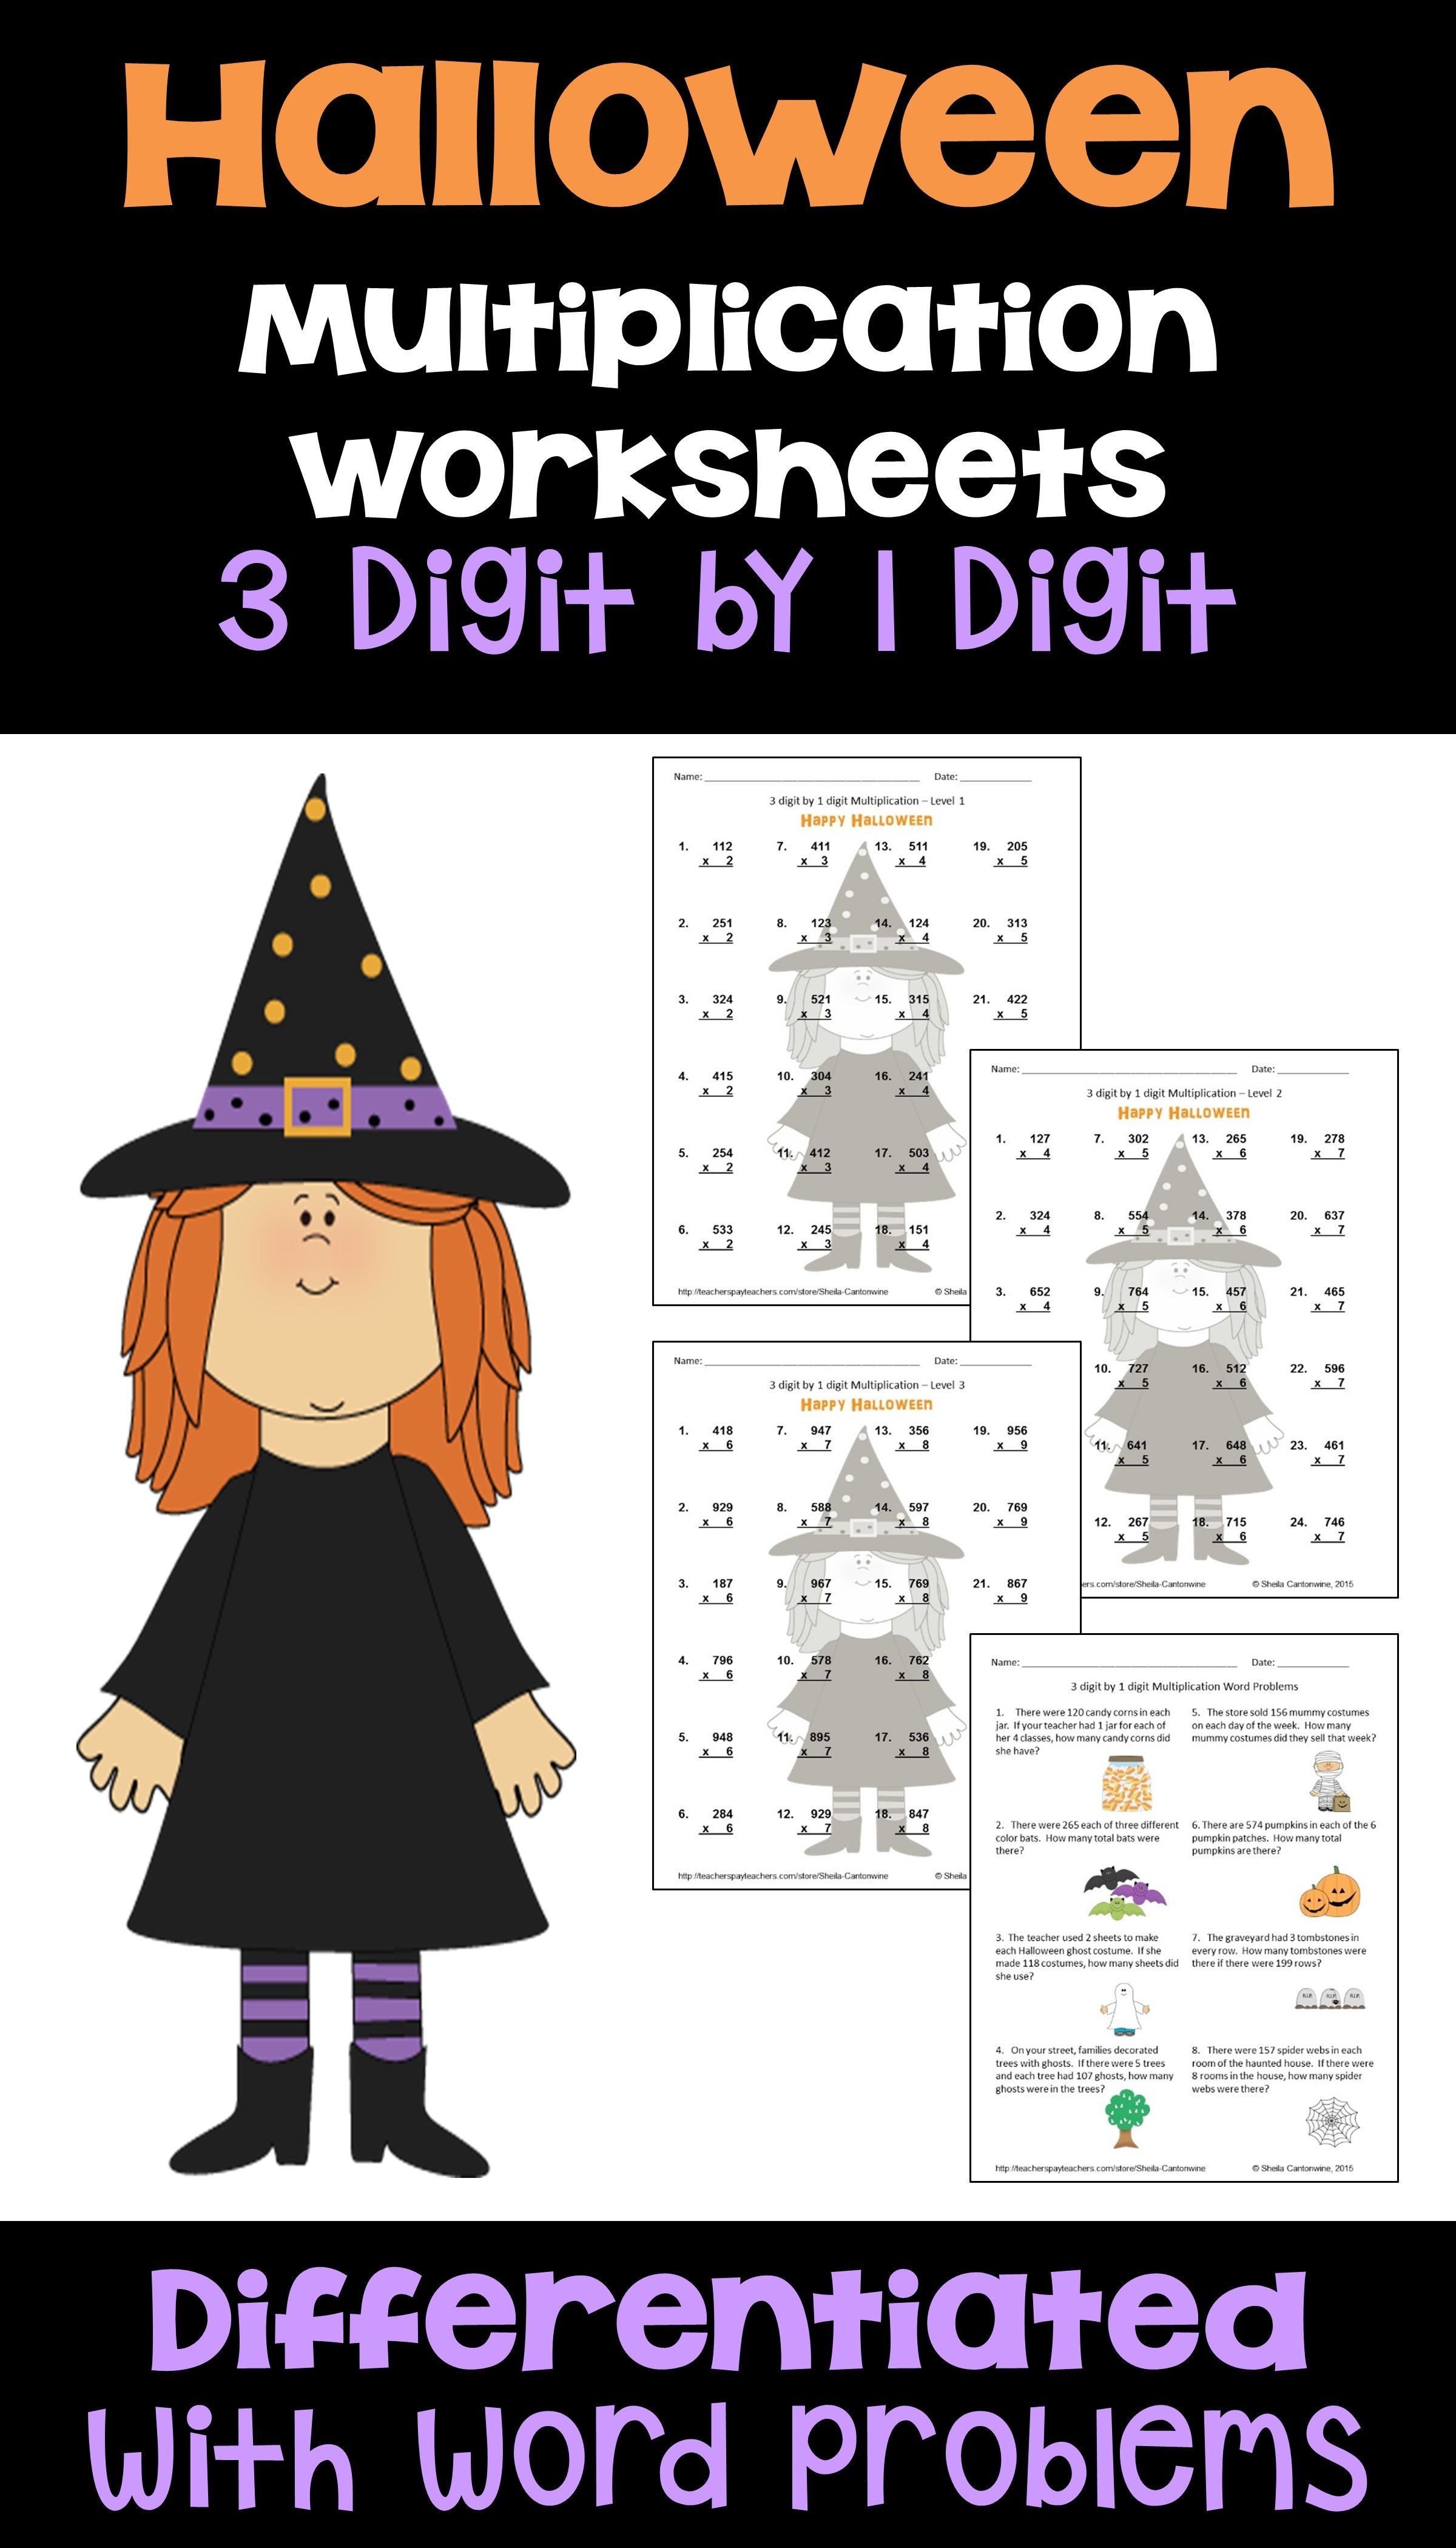 Halloween Math 3 Digit By 1 Digit Multiplication